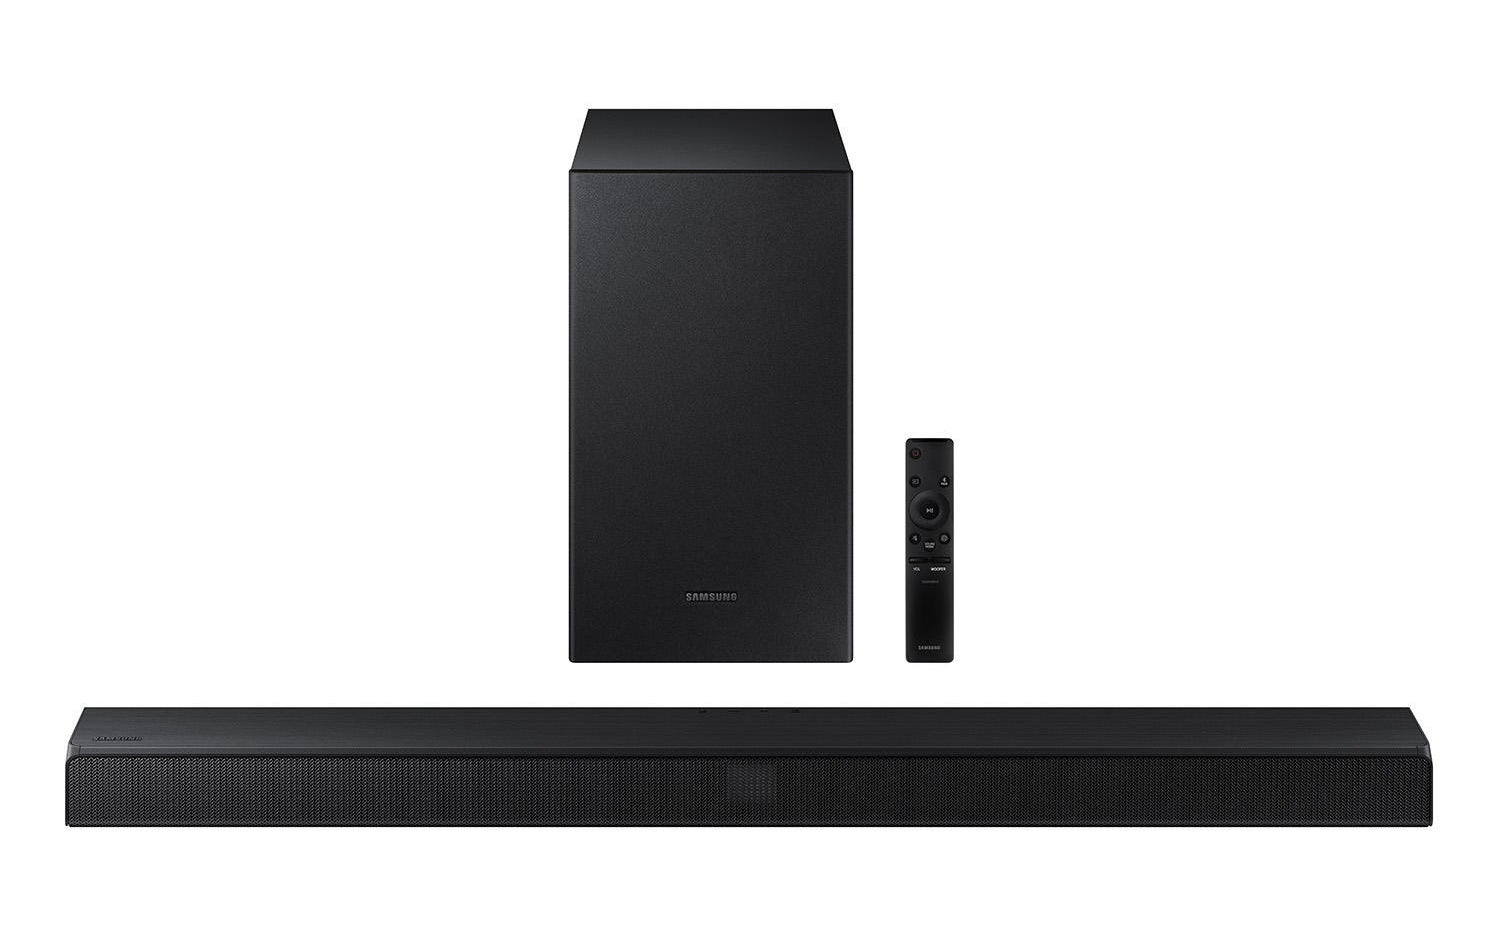 the long black sound bar, remote, and subwoofer